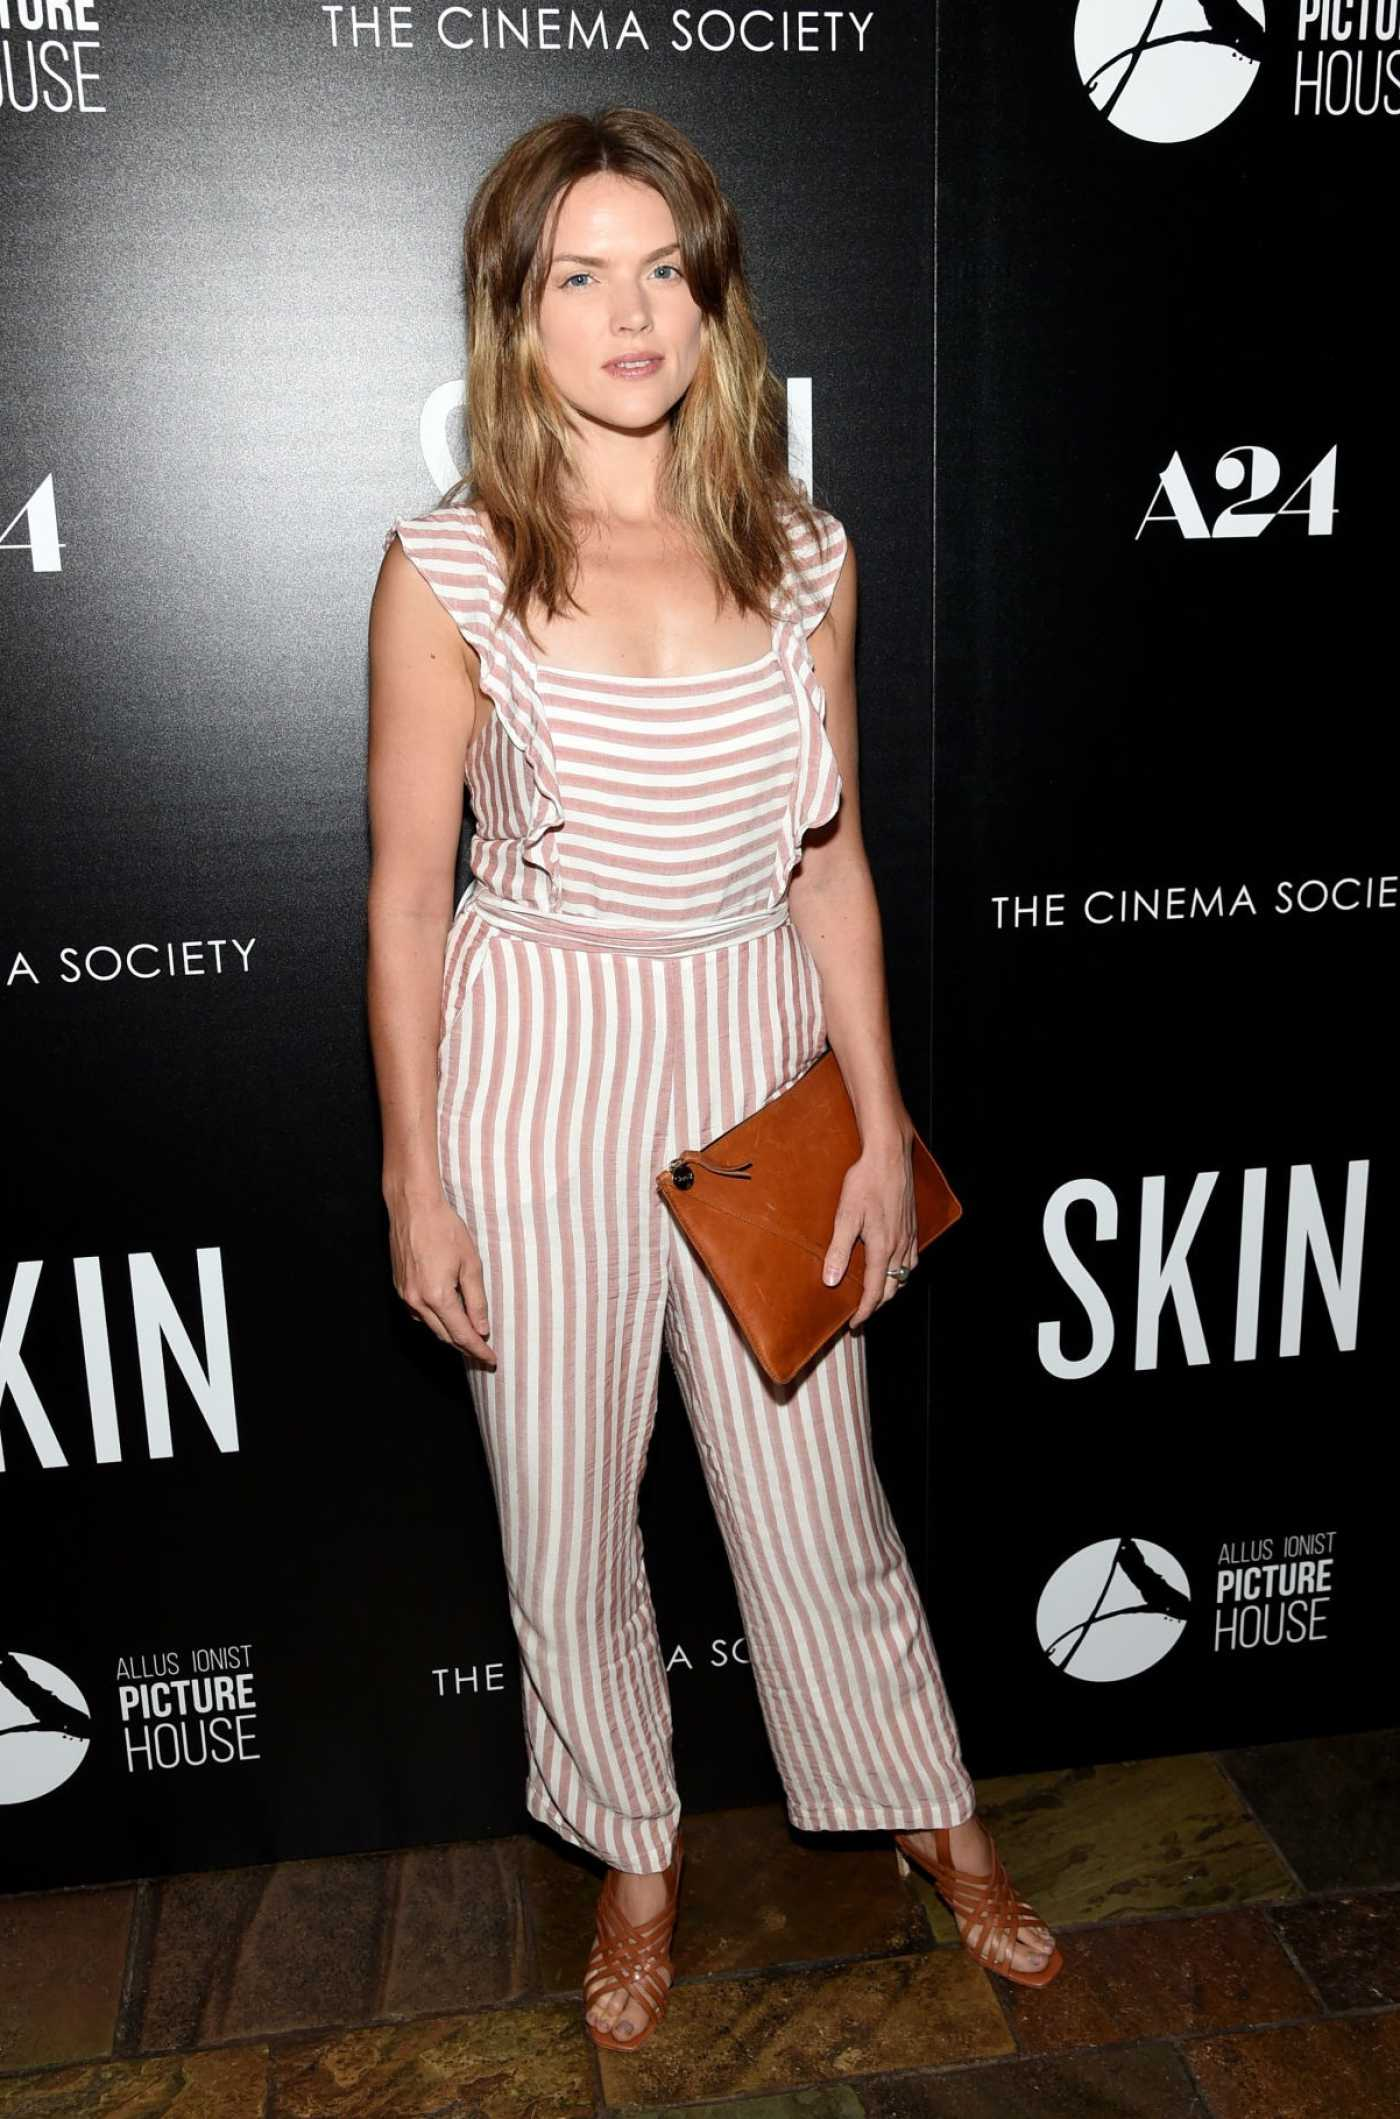 Erin Richards Attends the Skin Screening at the Roxy Cinema in New York City 07/24/2019